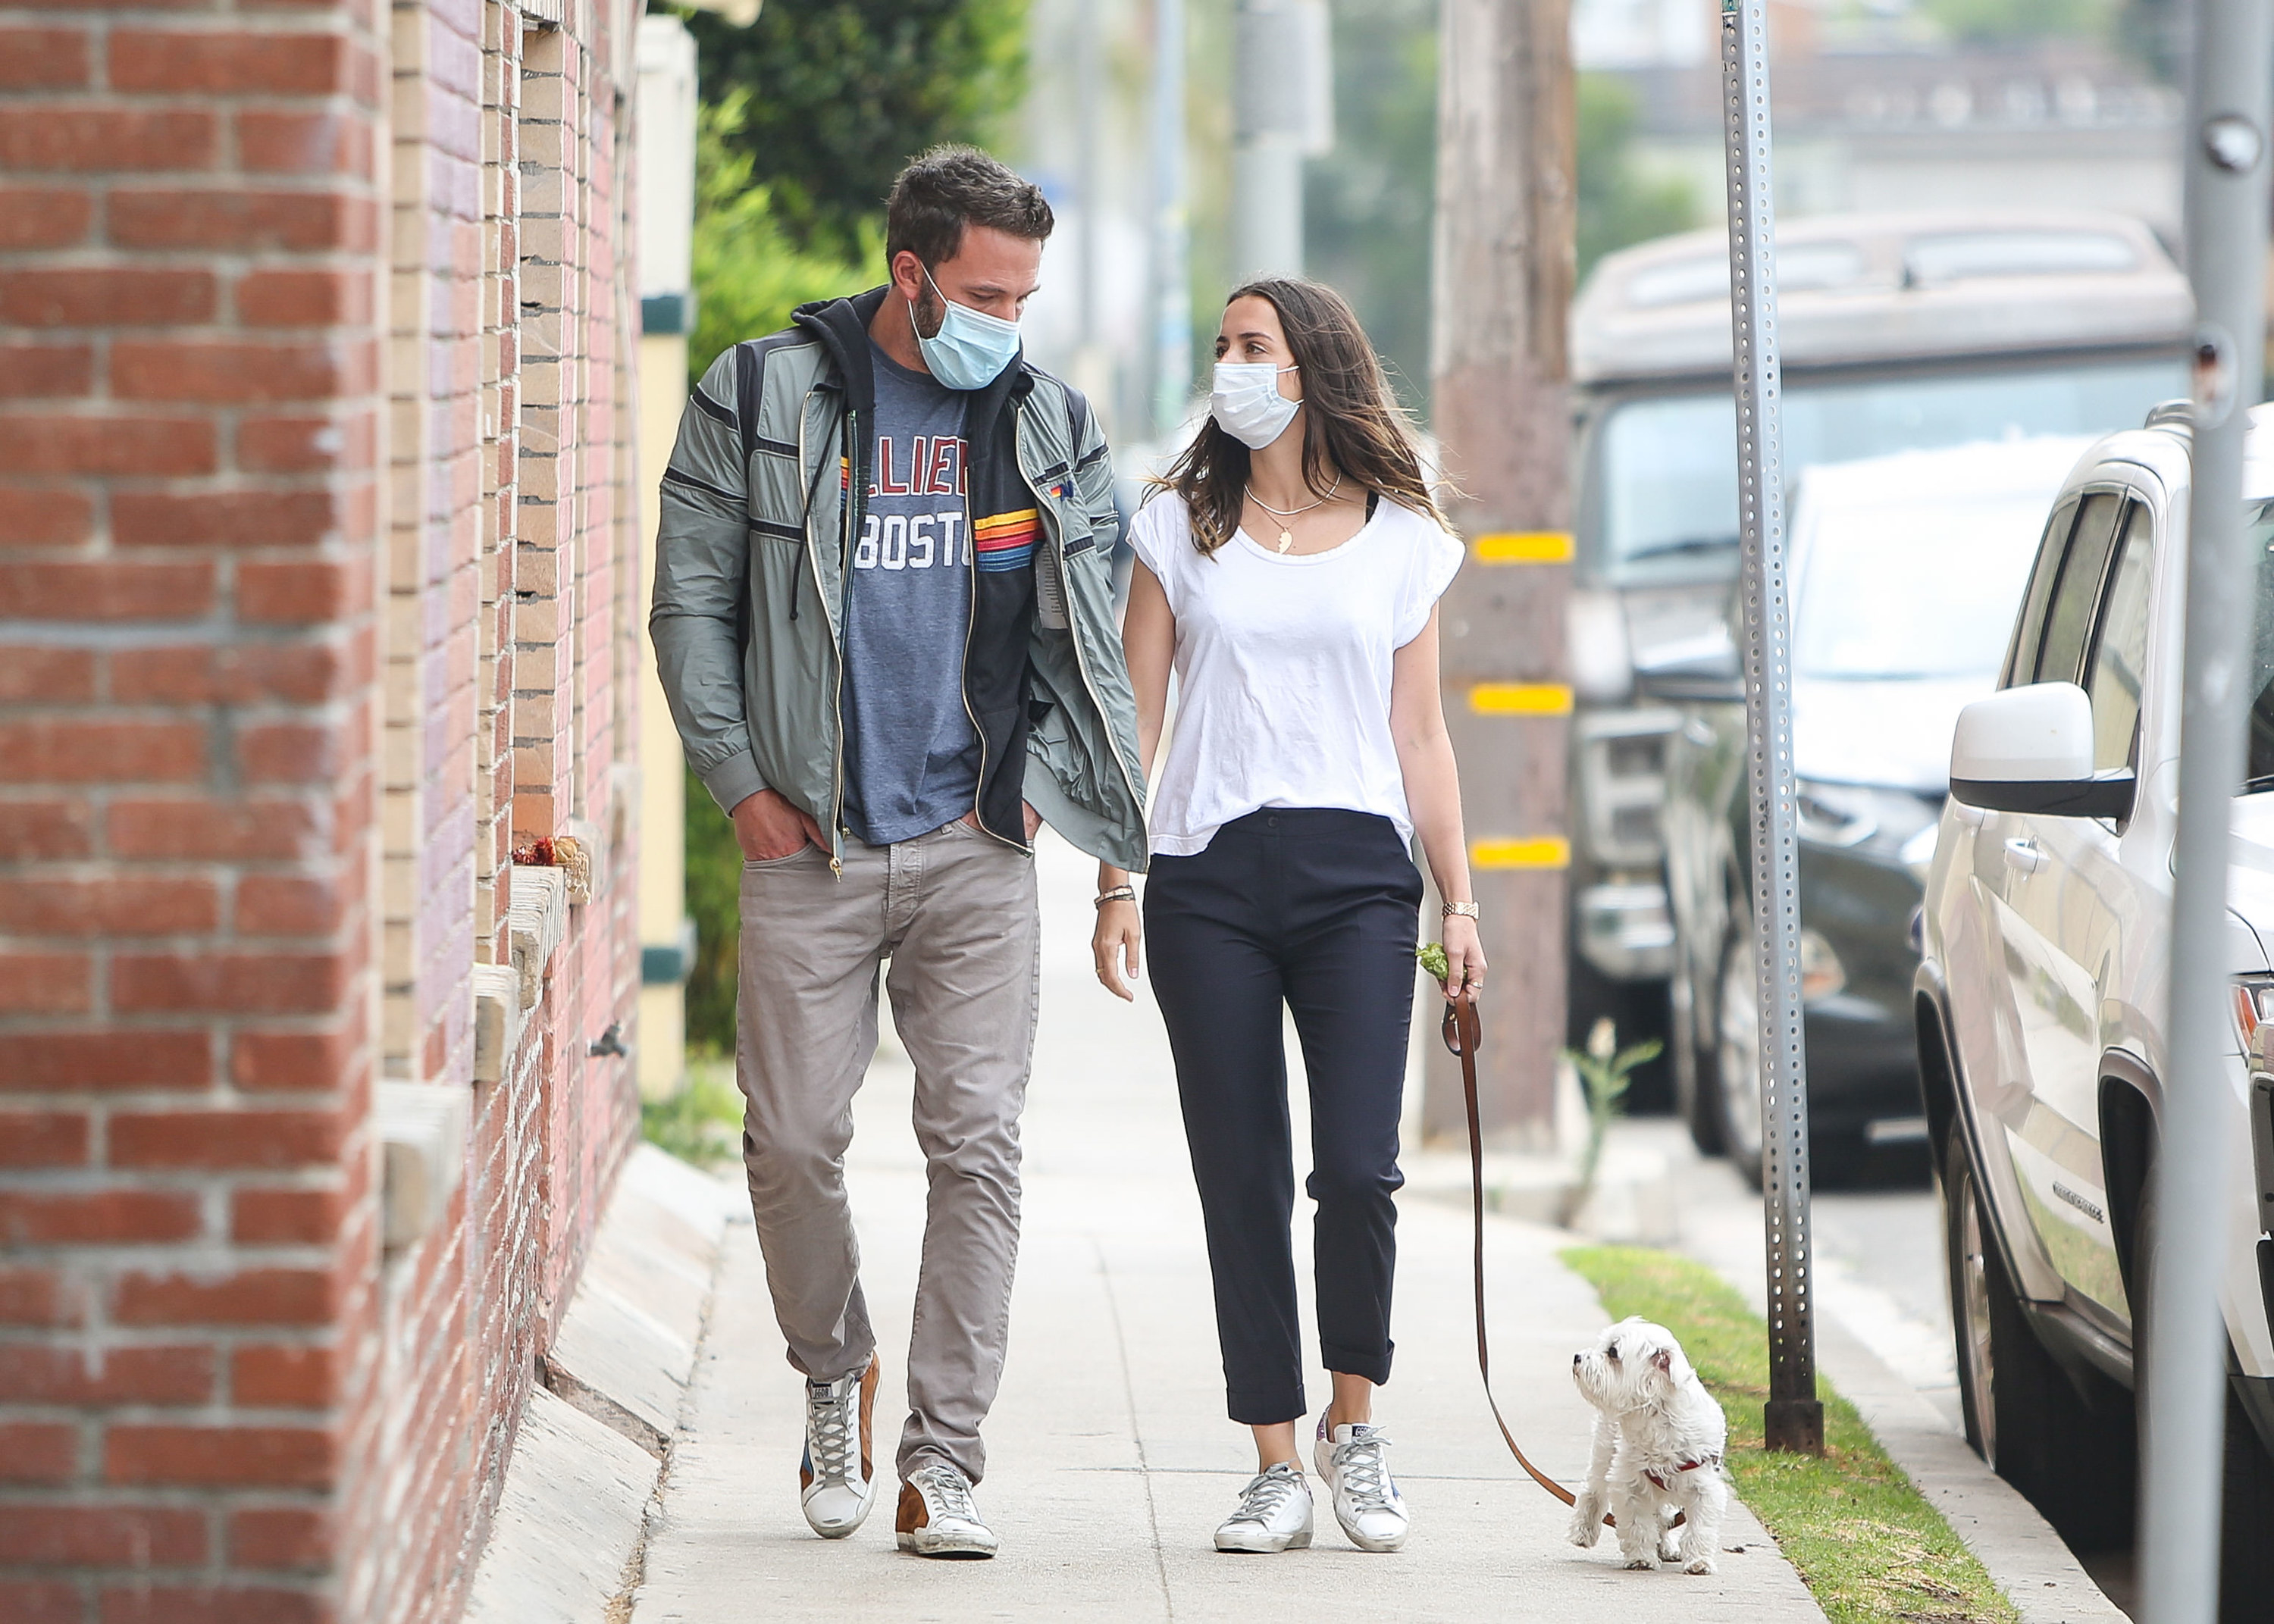 Ben Affleck and Ana de Armas taking a walk with their dog